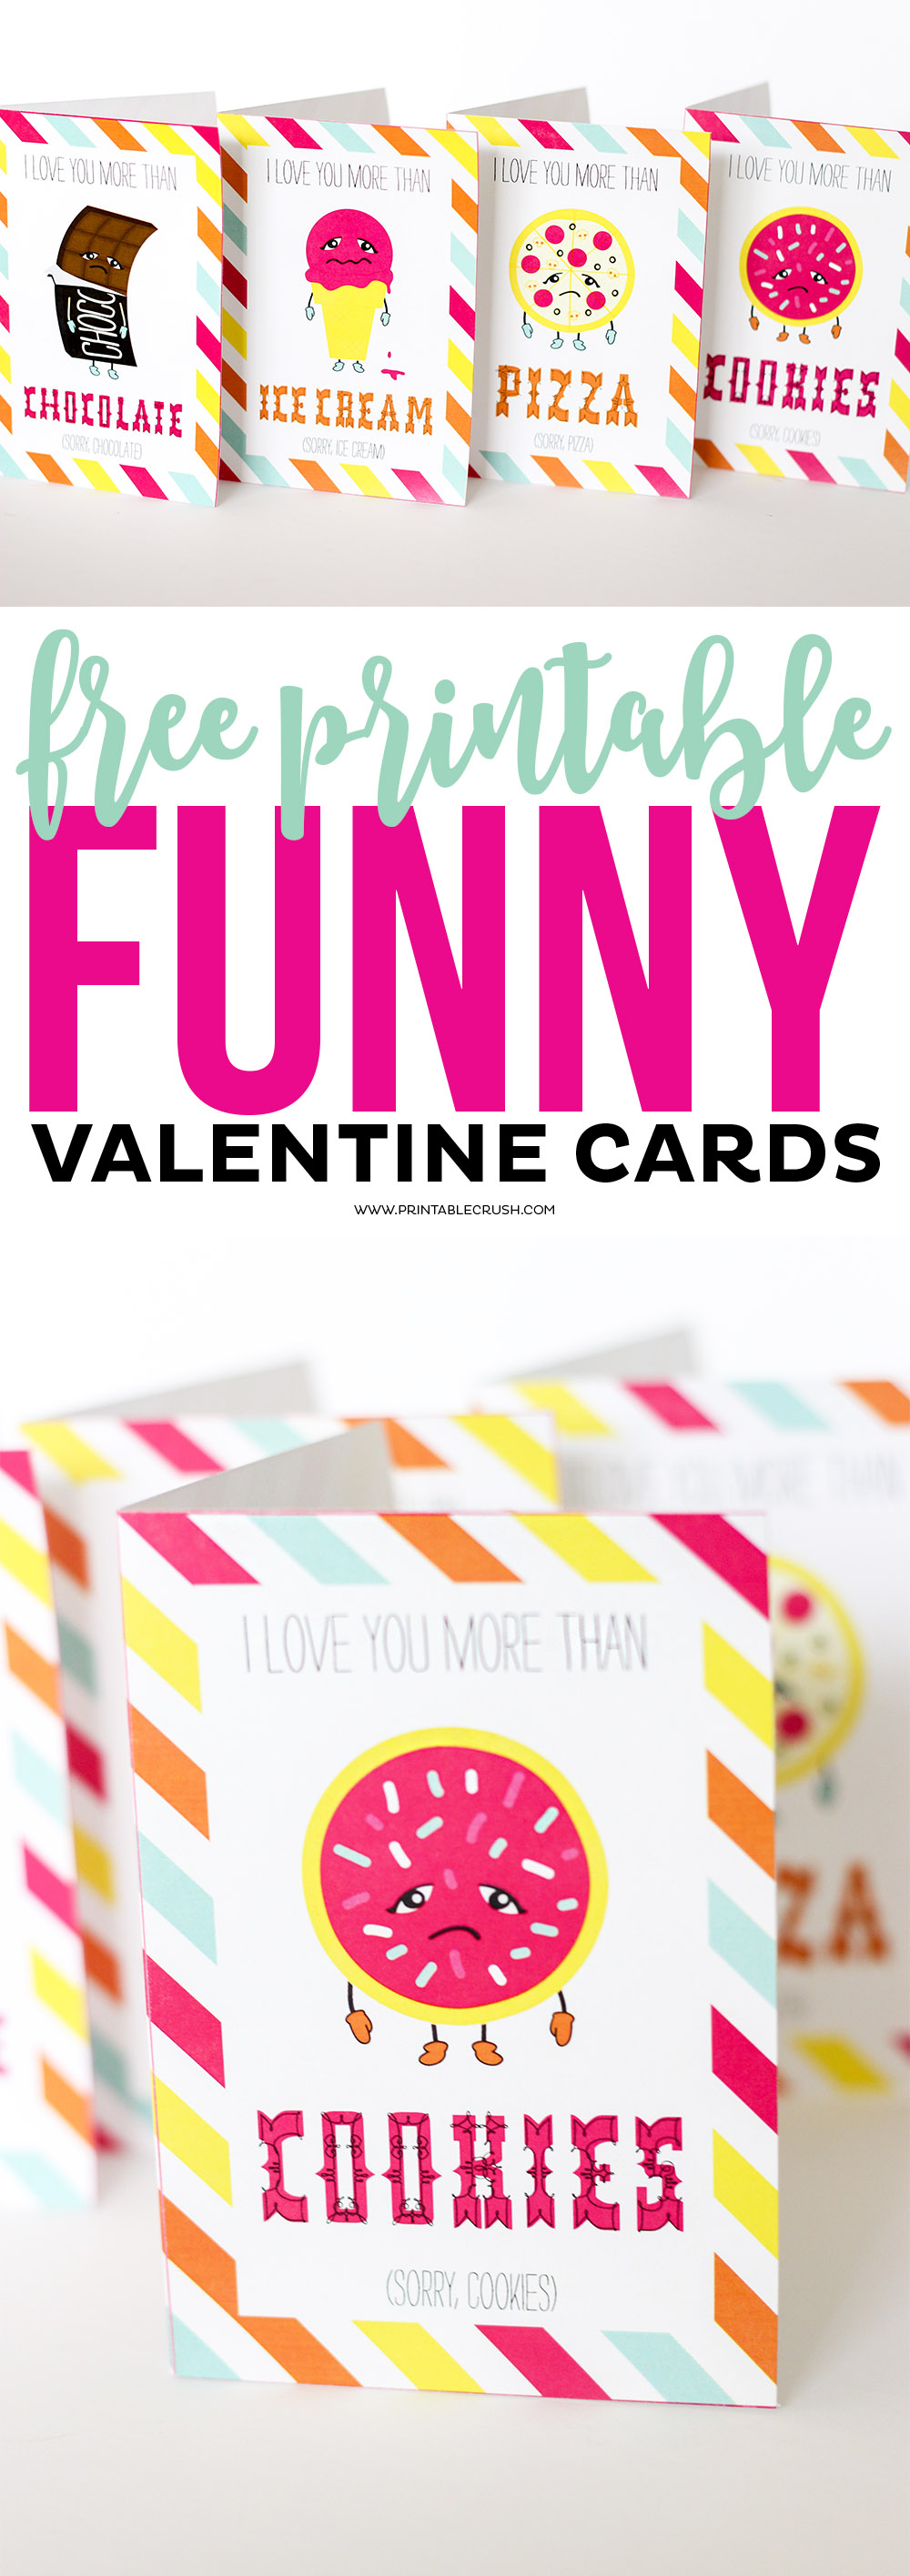 Funny Valentine cards long collage